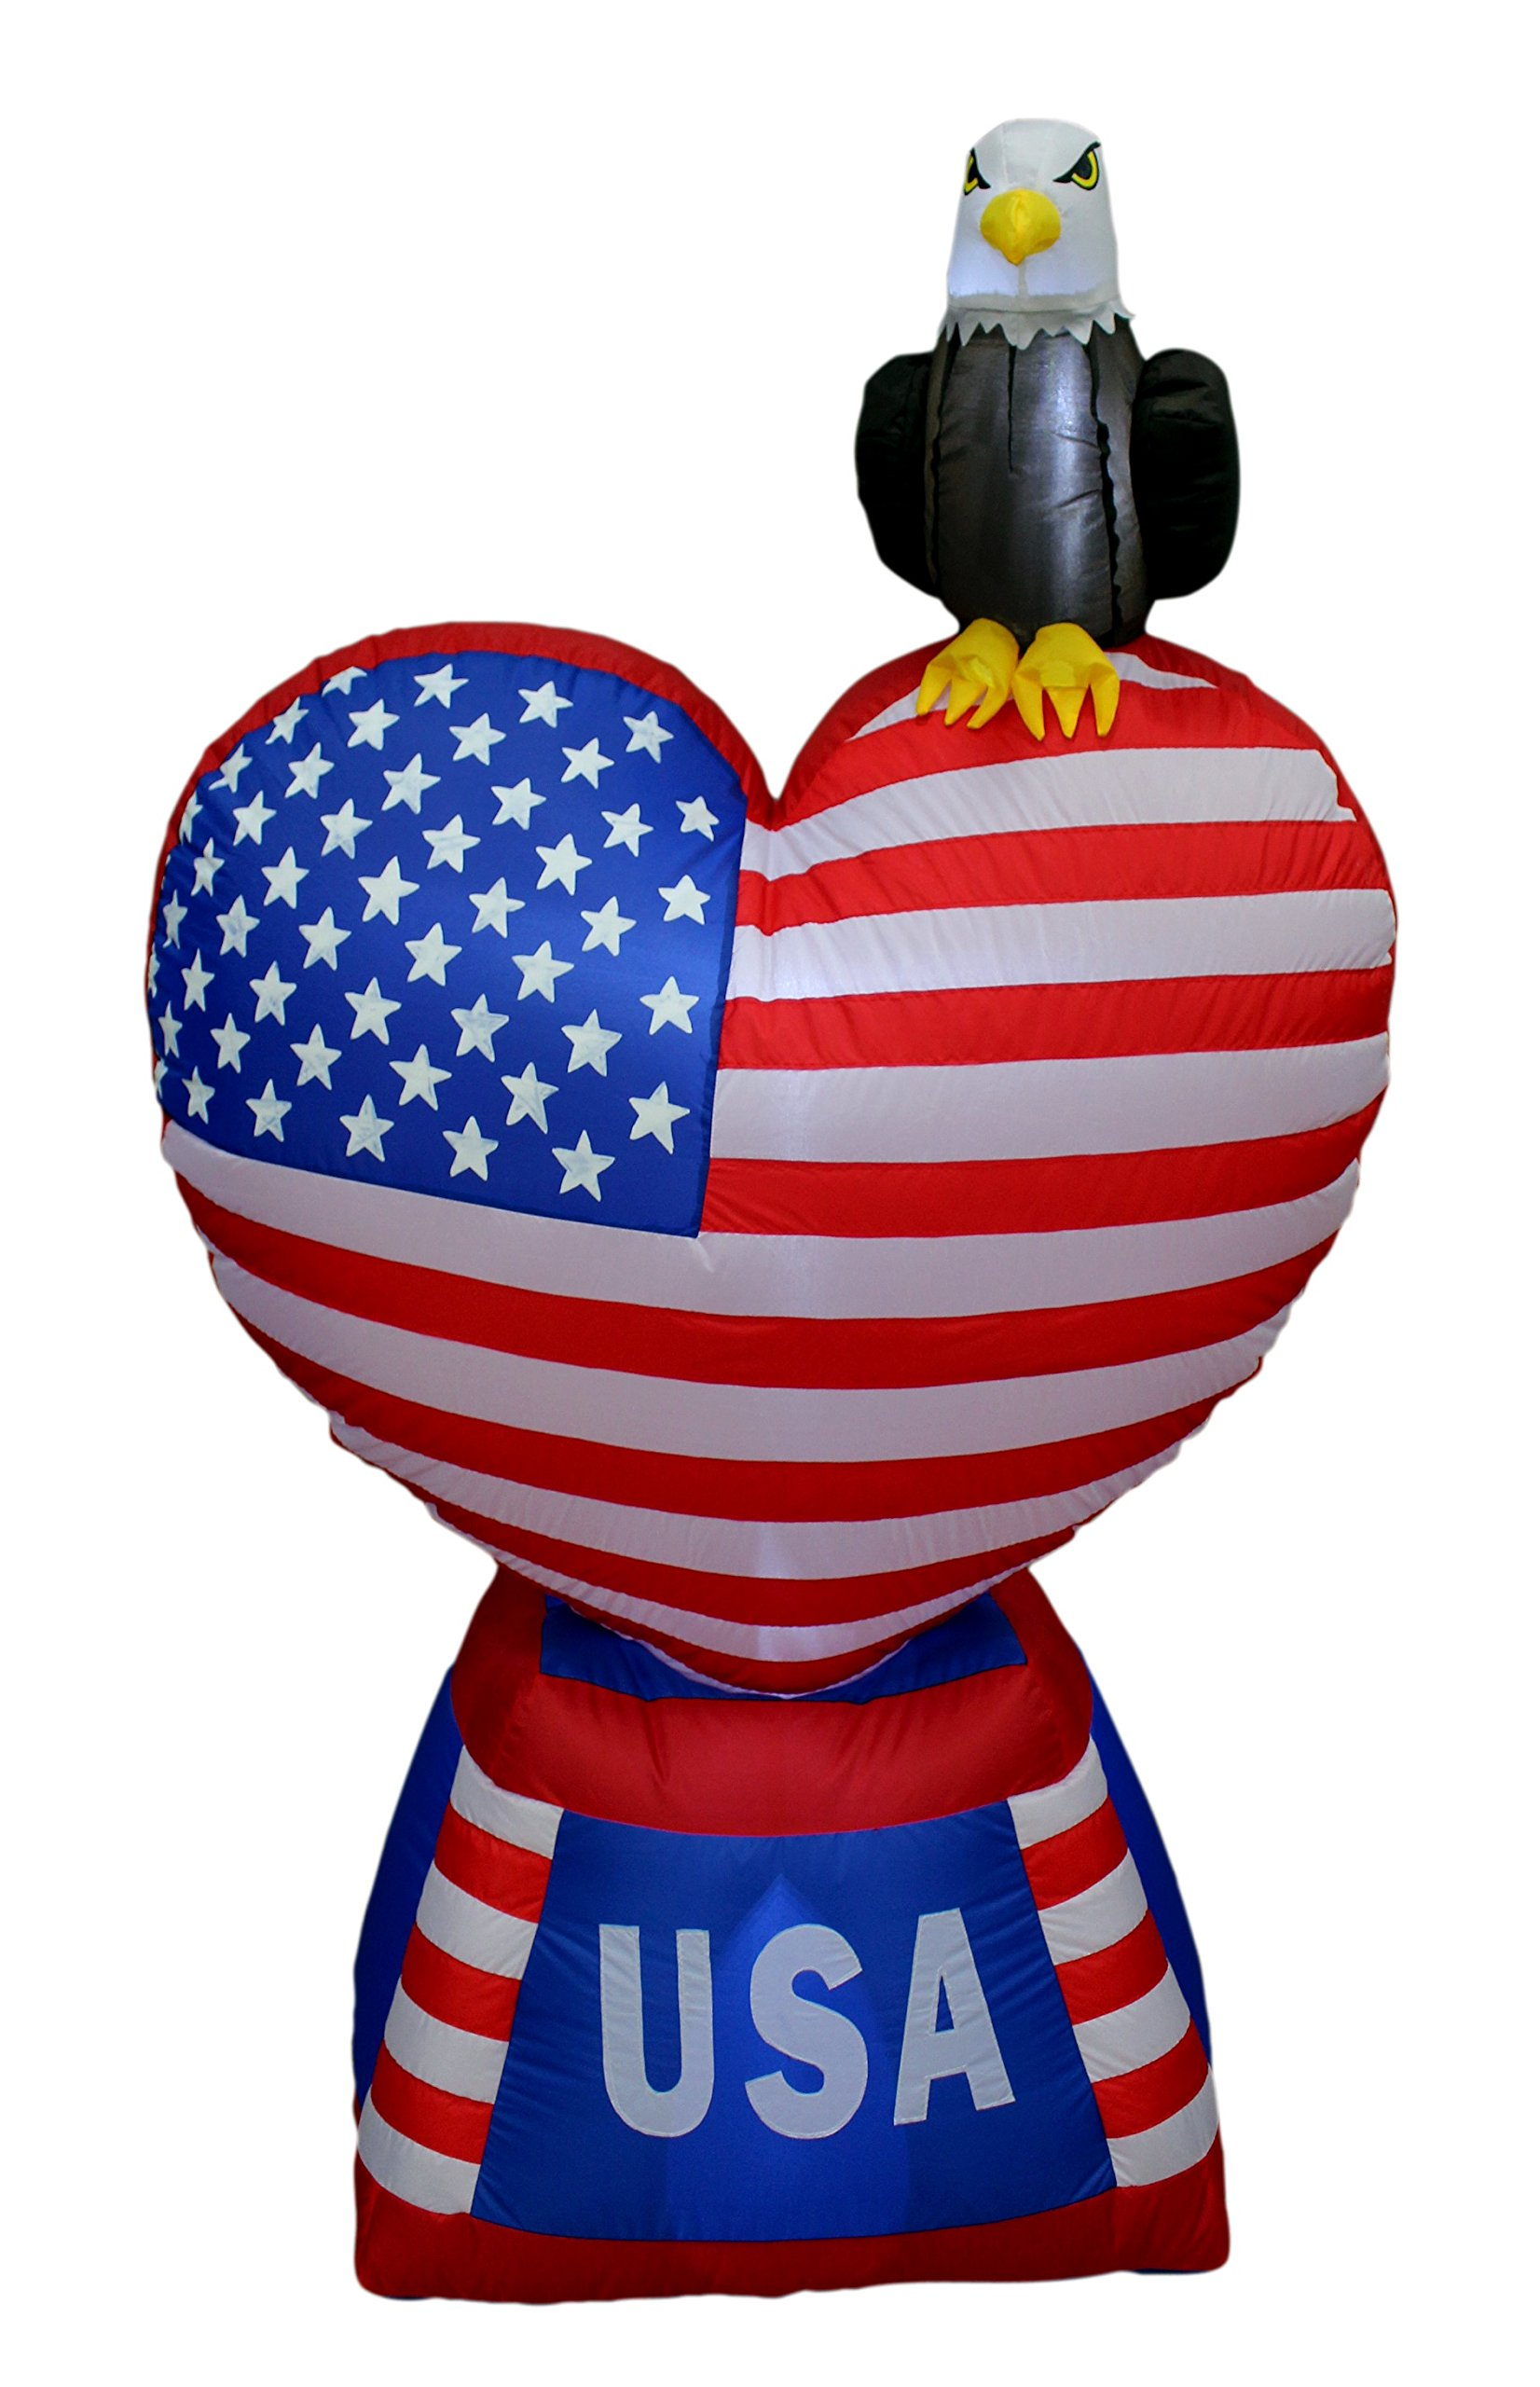 BZB Goods 5 Foot Tall Lighted Patriotic Independence Day 4th of July Inflatable Love Heart with American Flag and Bald Eagle Indoor Outdoor Decoration